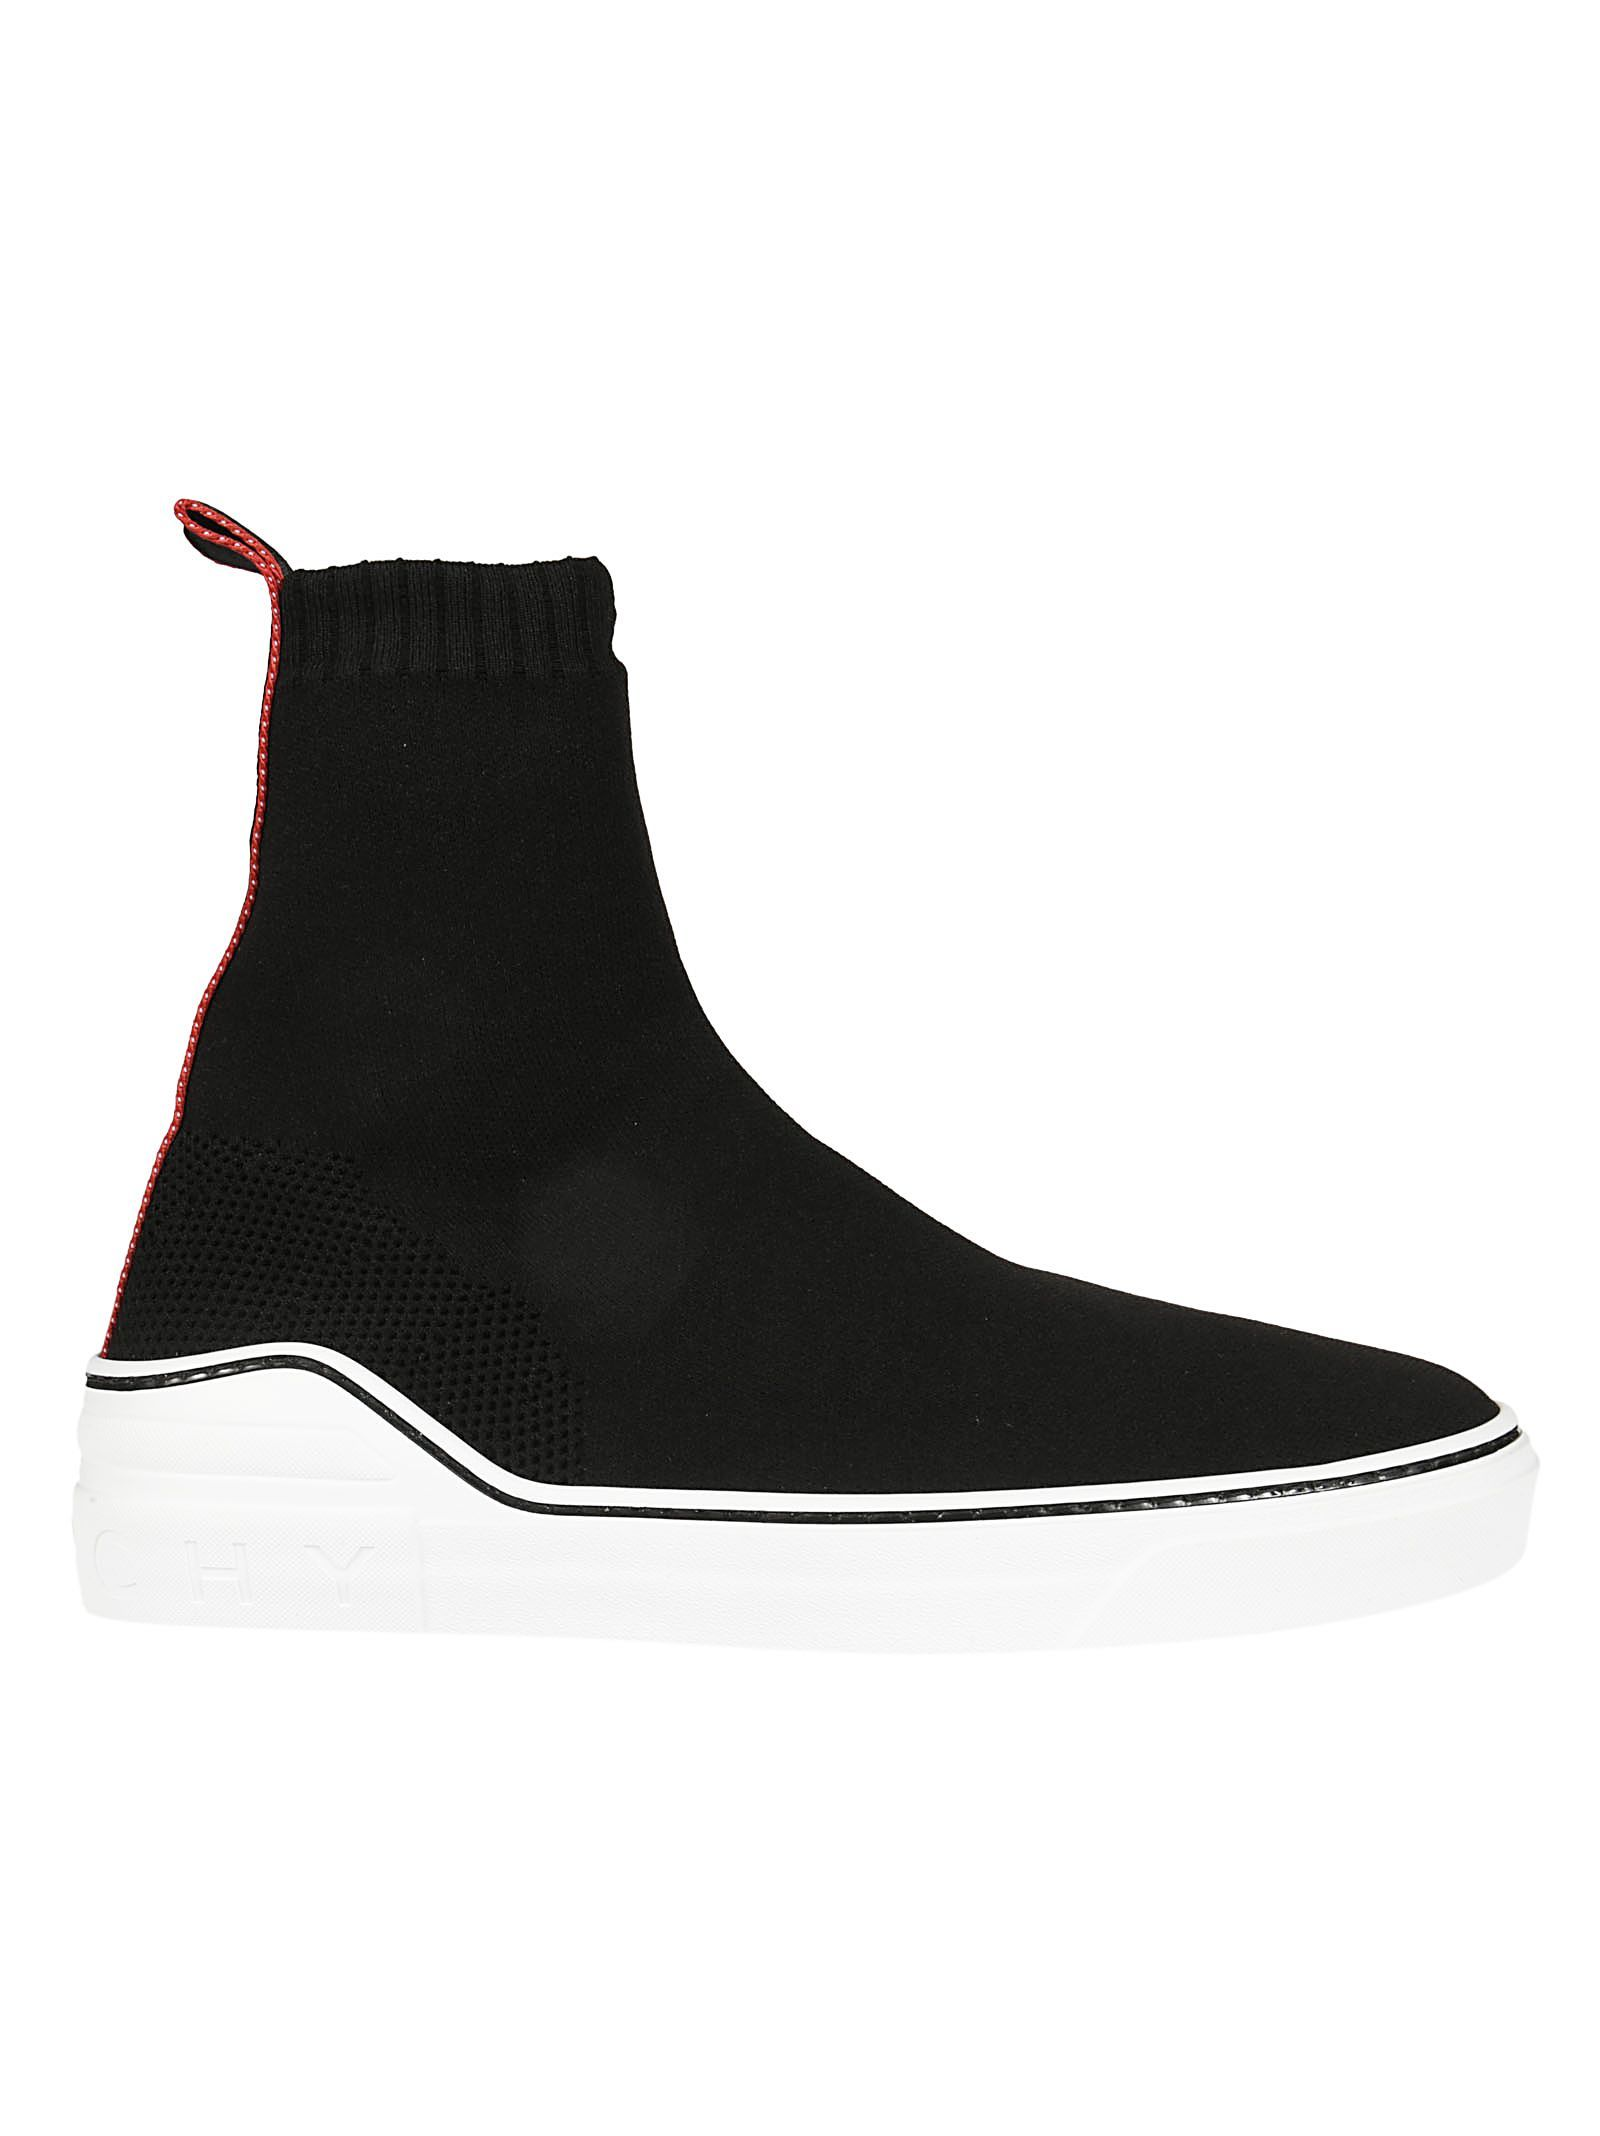 c065487d638 GIVENCHY SOCK STYLE SNEAKERS.  givenchy  shoes